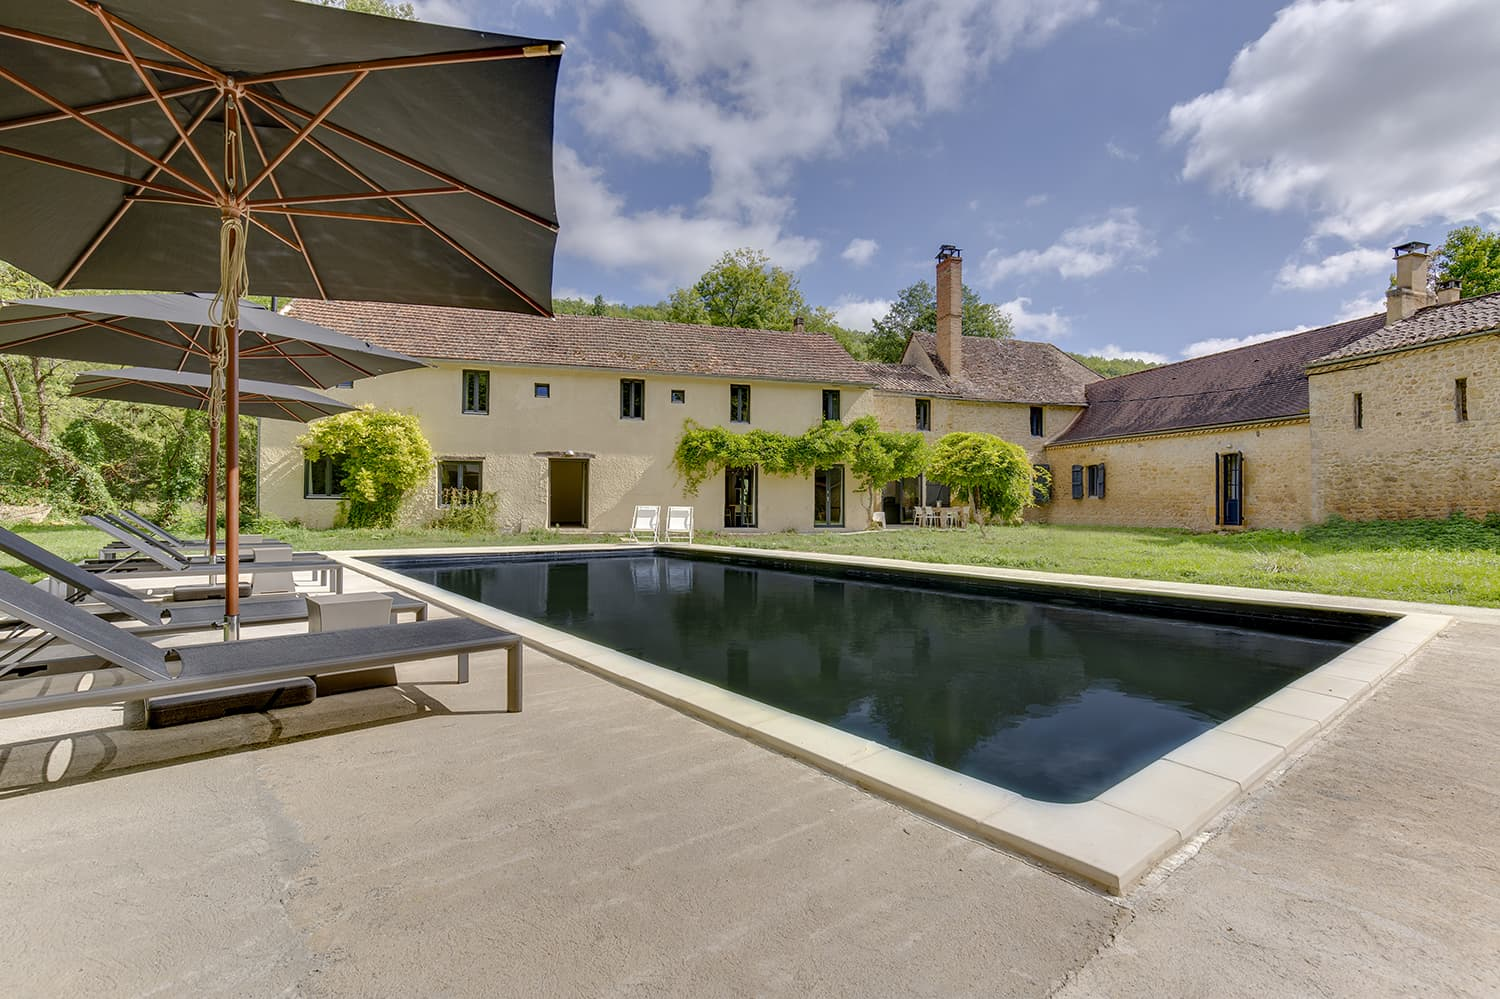 Holiday accommodation in Saint-Avit-Sénieur, Nouvelle-Aquitaine with private pool